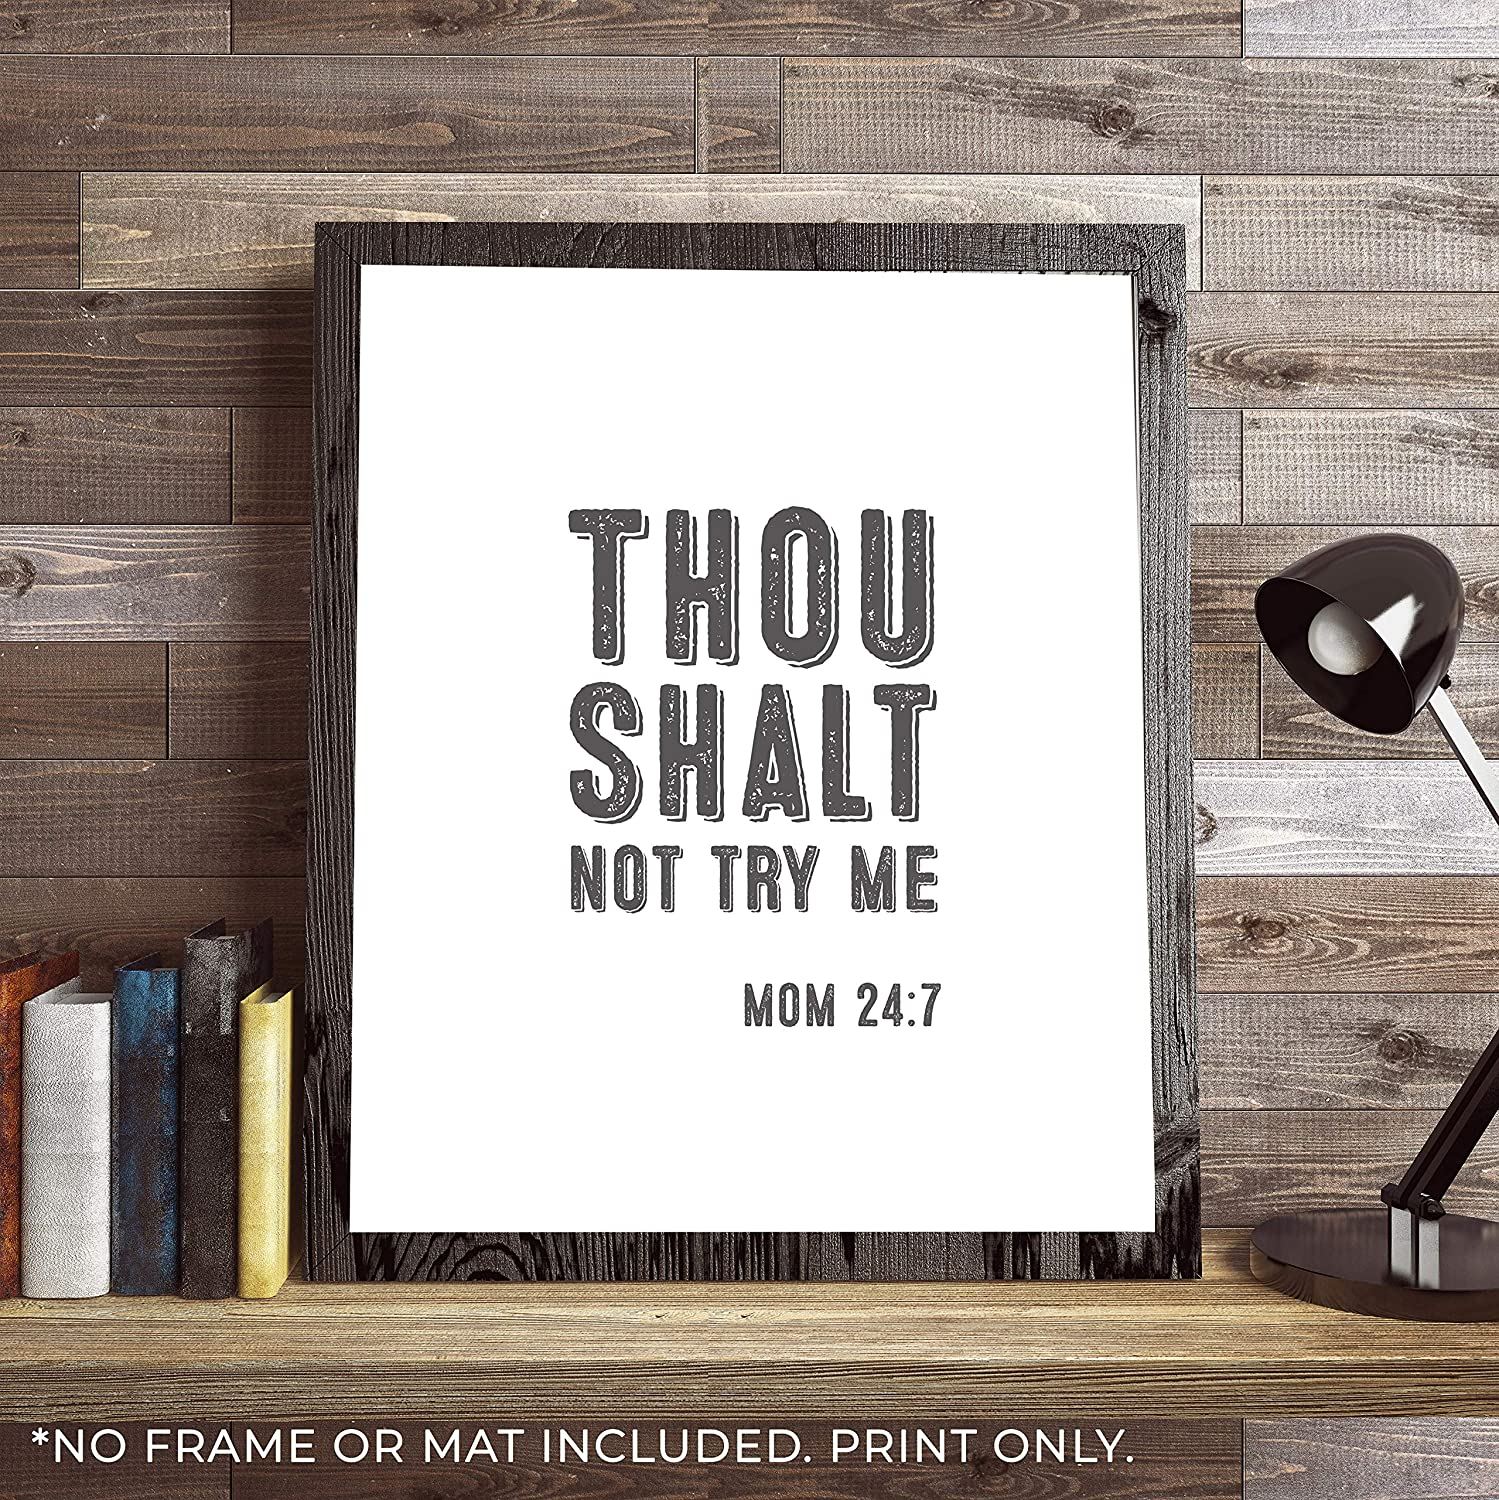 Thou Shalt Not Try Me - Mom Bible Verse - Funny Home Decor Sign - Unframed  11x14 Print